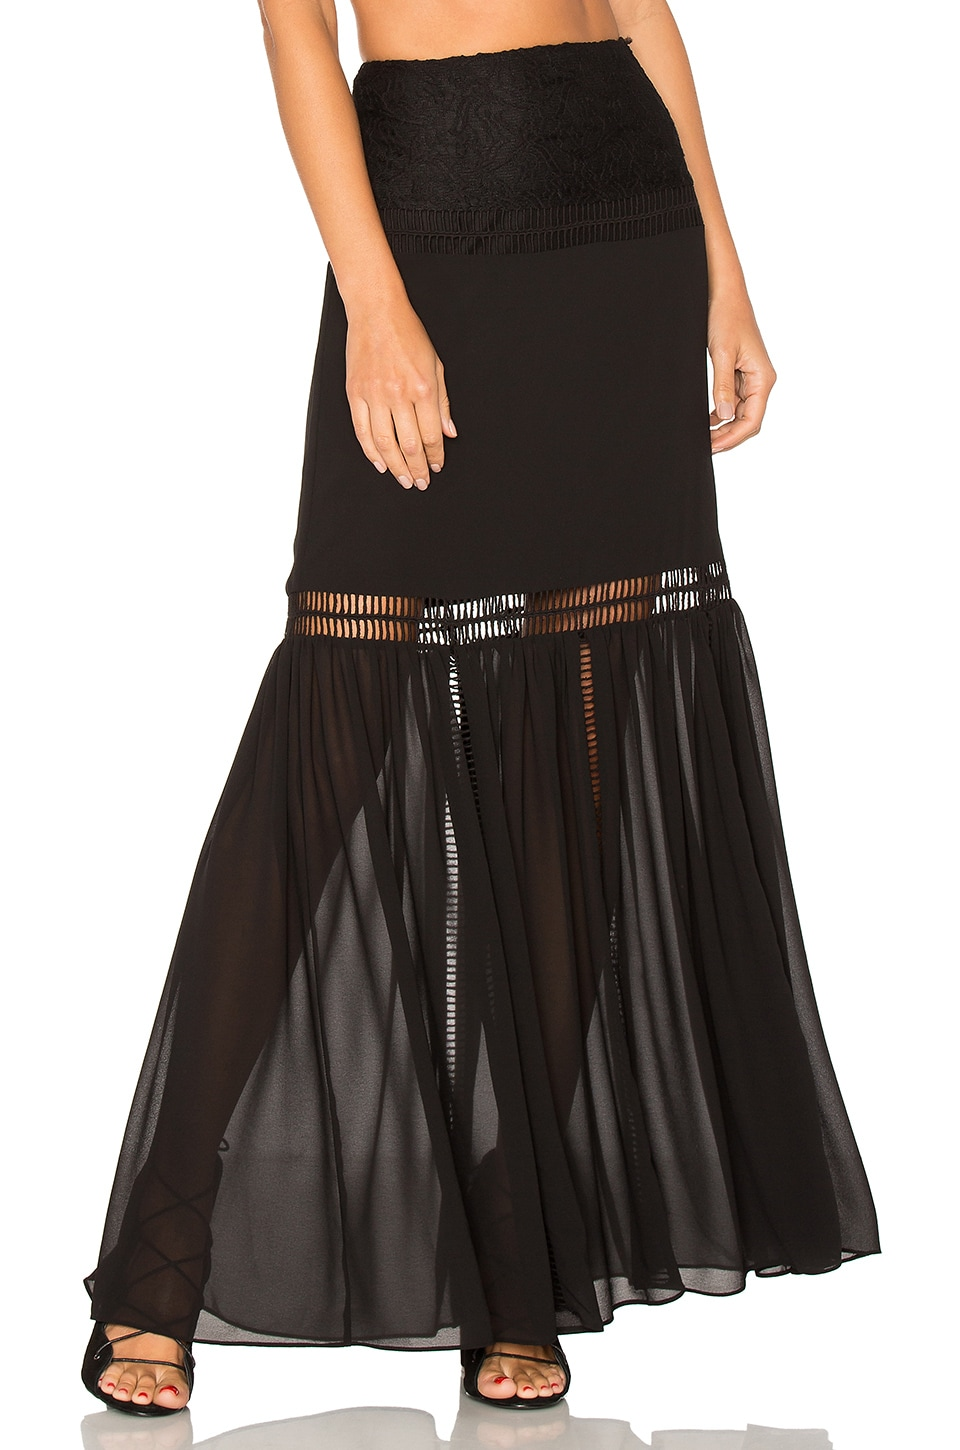 ale by alessandra x REVOLVE Virginia Skirt in Black Night